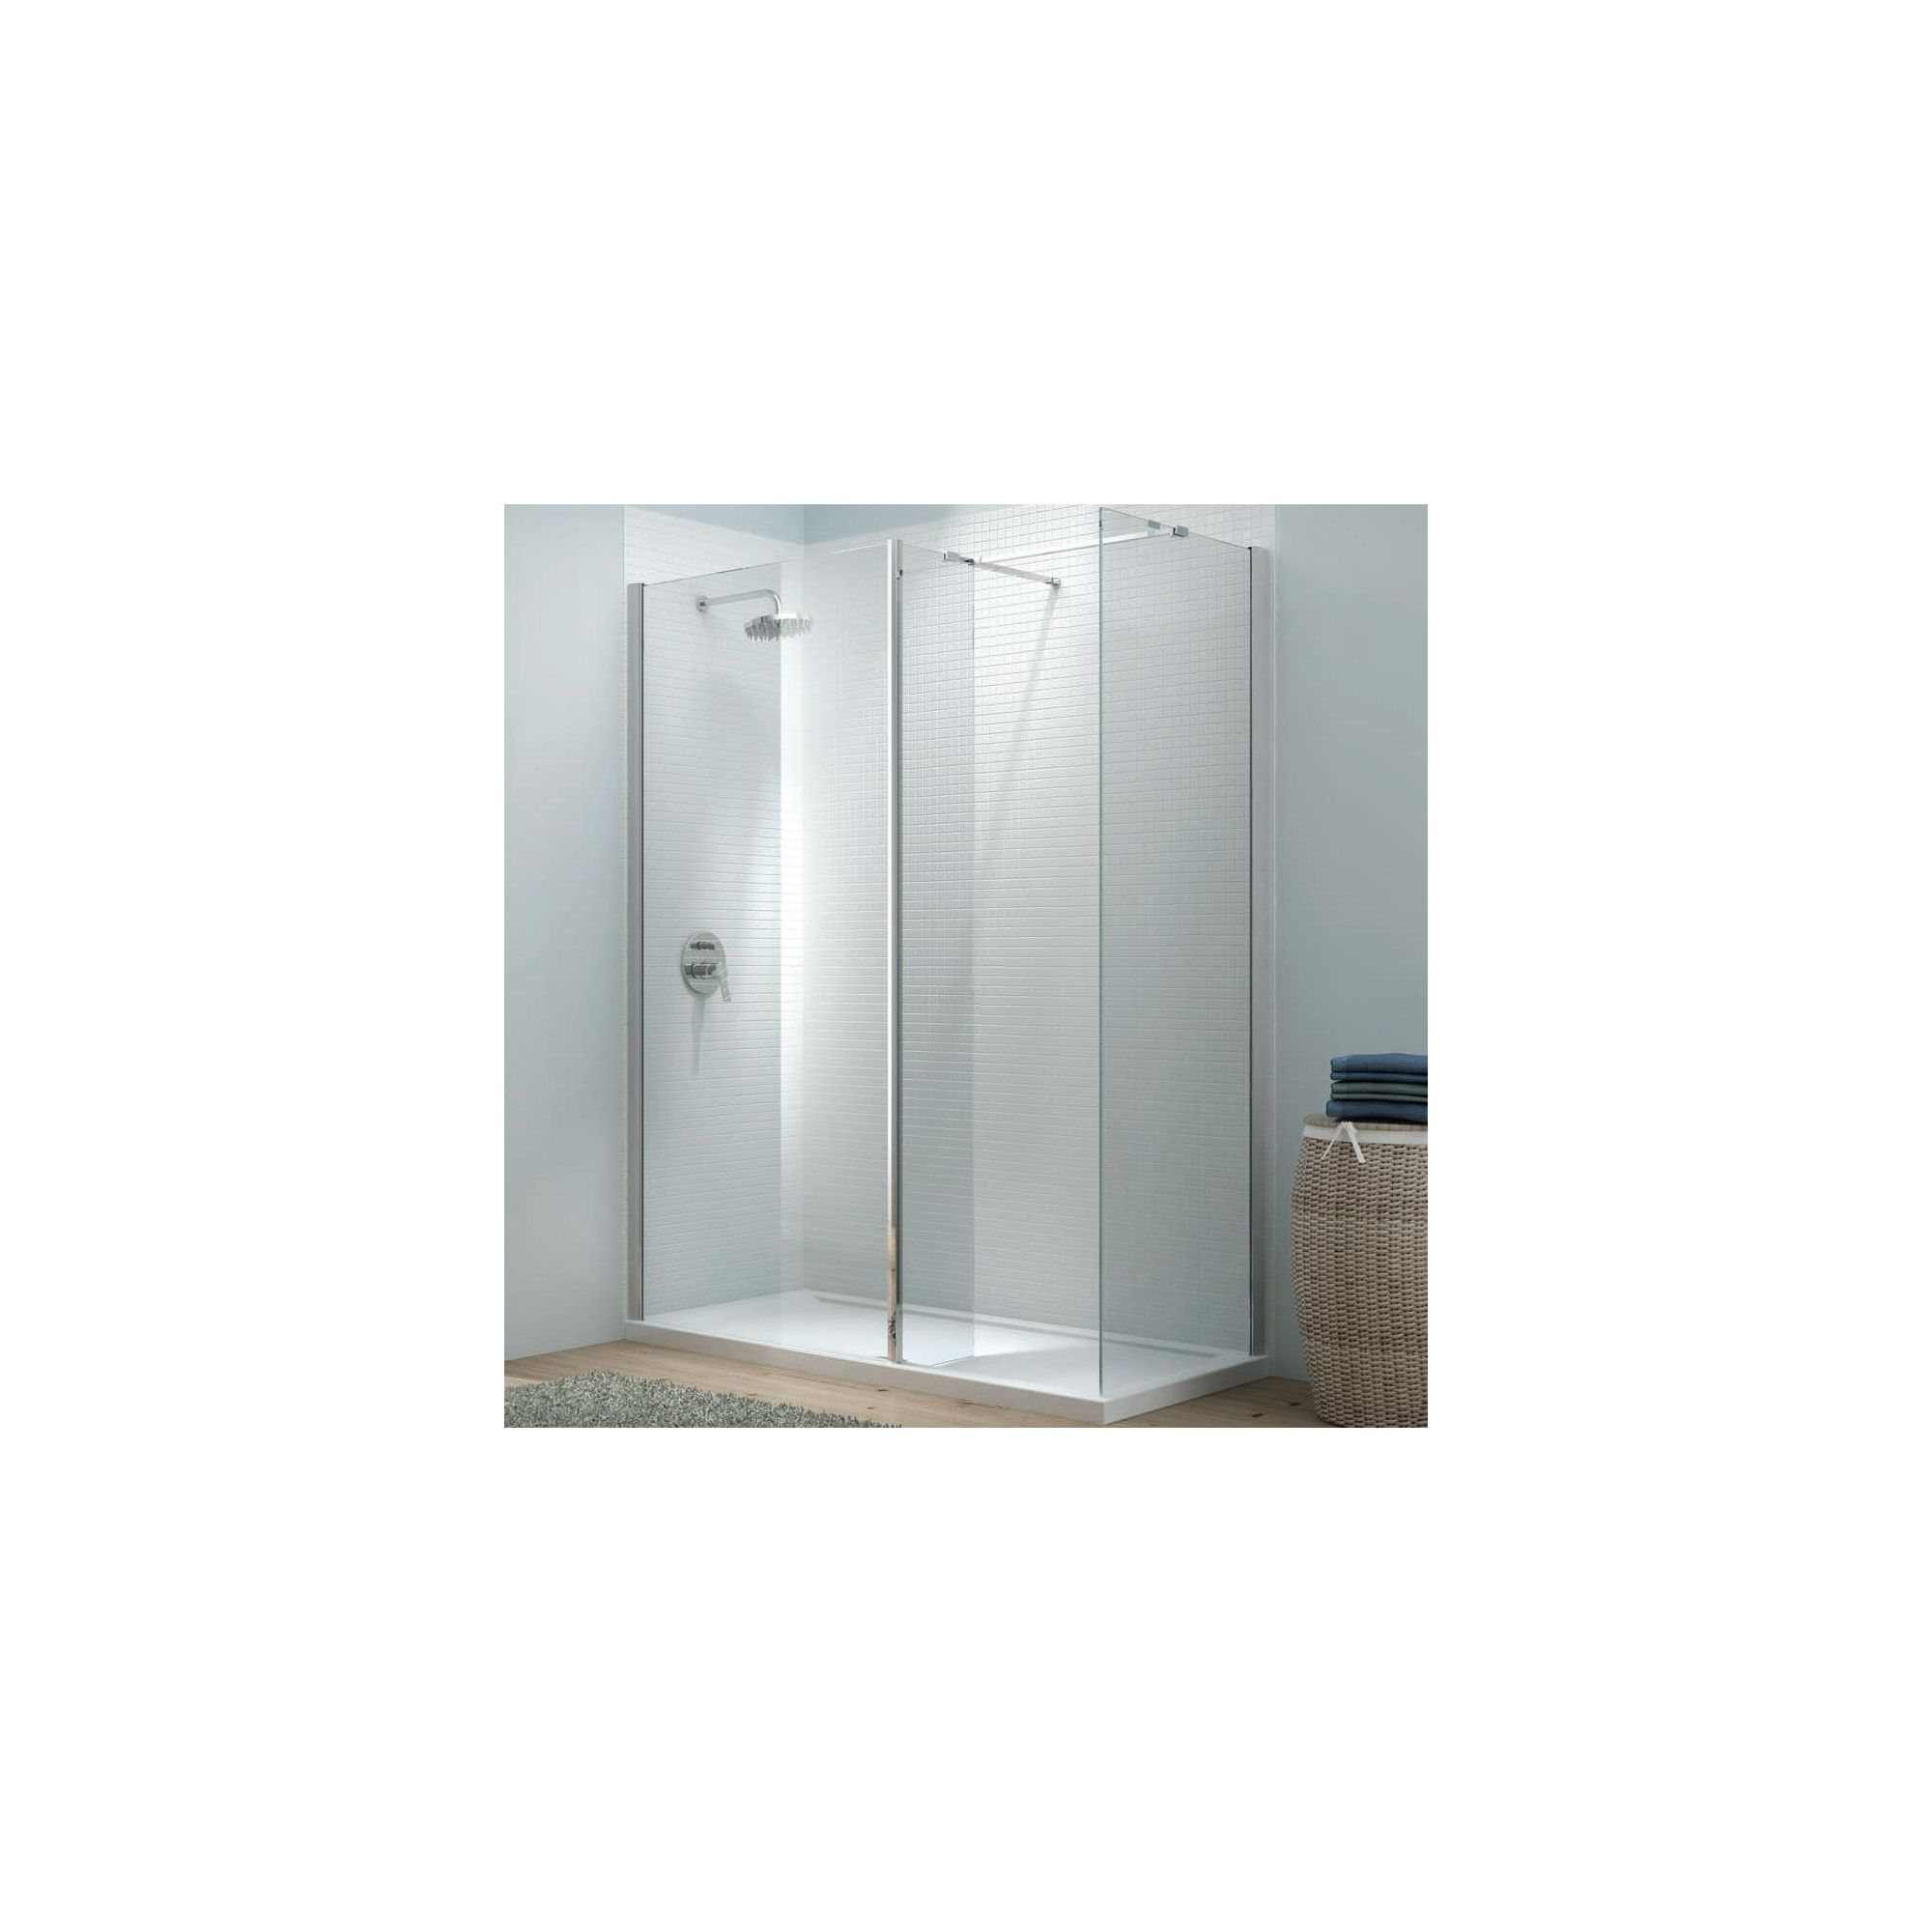 Merlyn Vivid Eight Cube Corner Walk-In Shower Enclosure, 1700mm x 800mm, Low Profile Tray, 8mm Glass at Tesco Direct